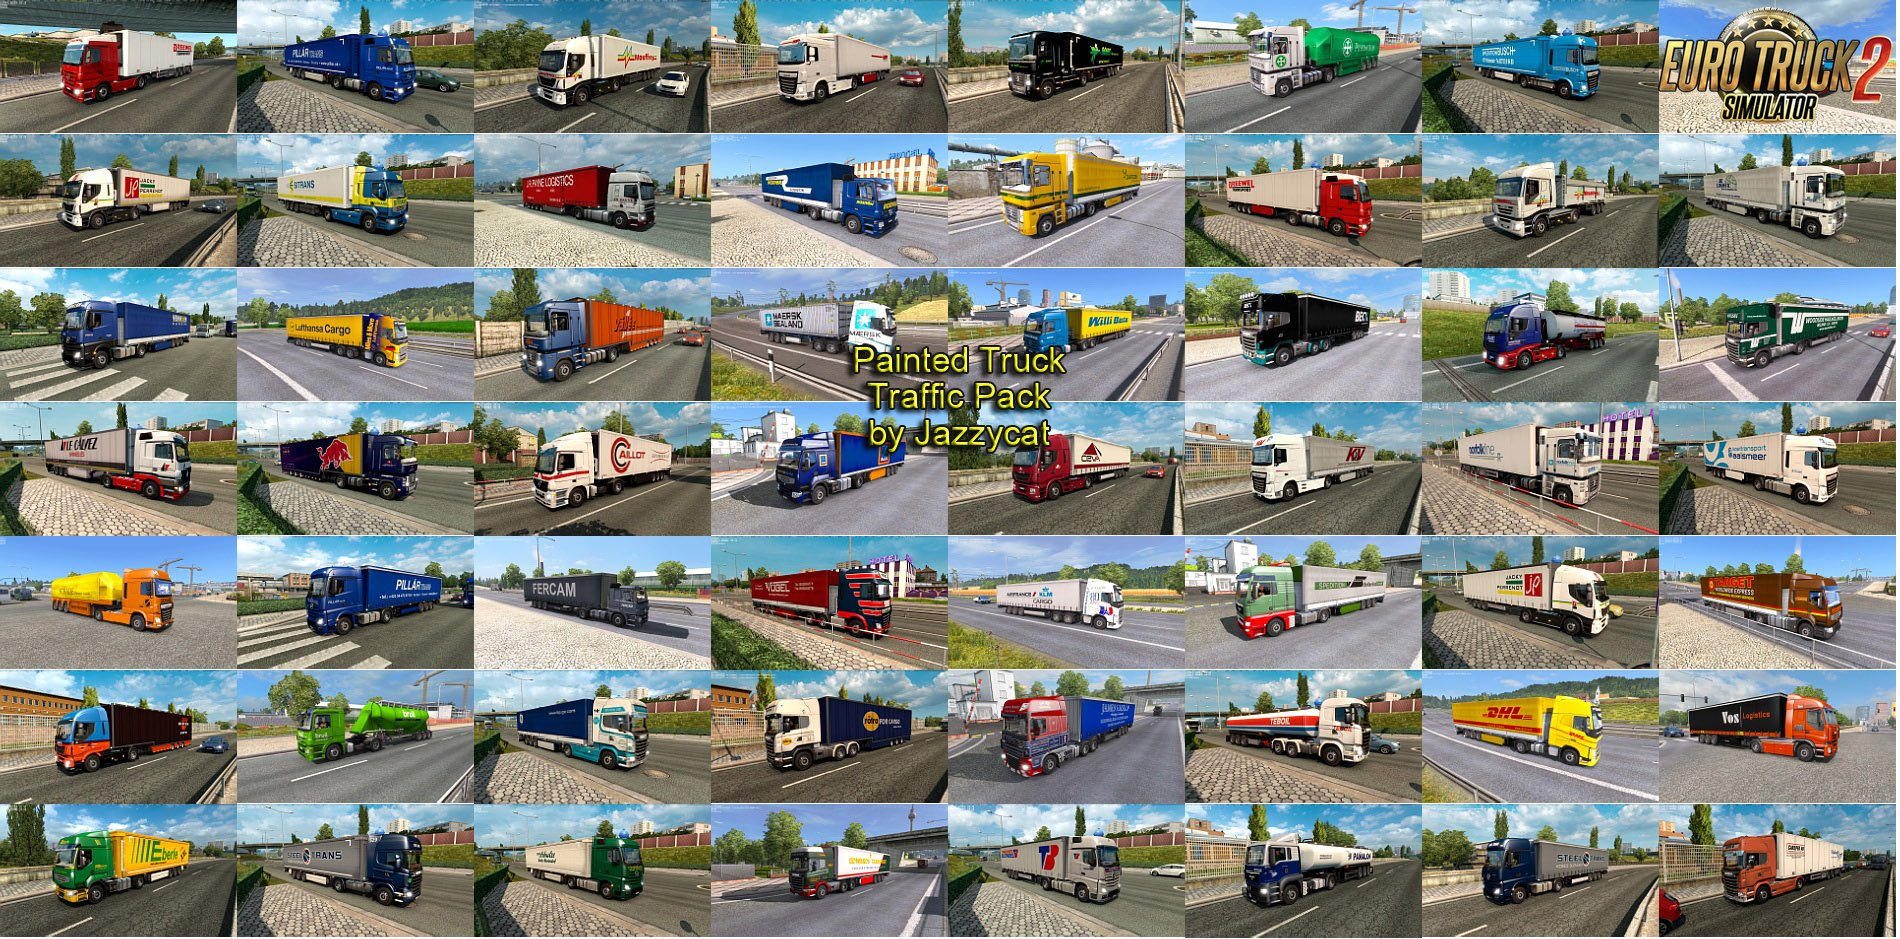 Painted Truck Traffic Pack v3.6 by Jazzycat